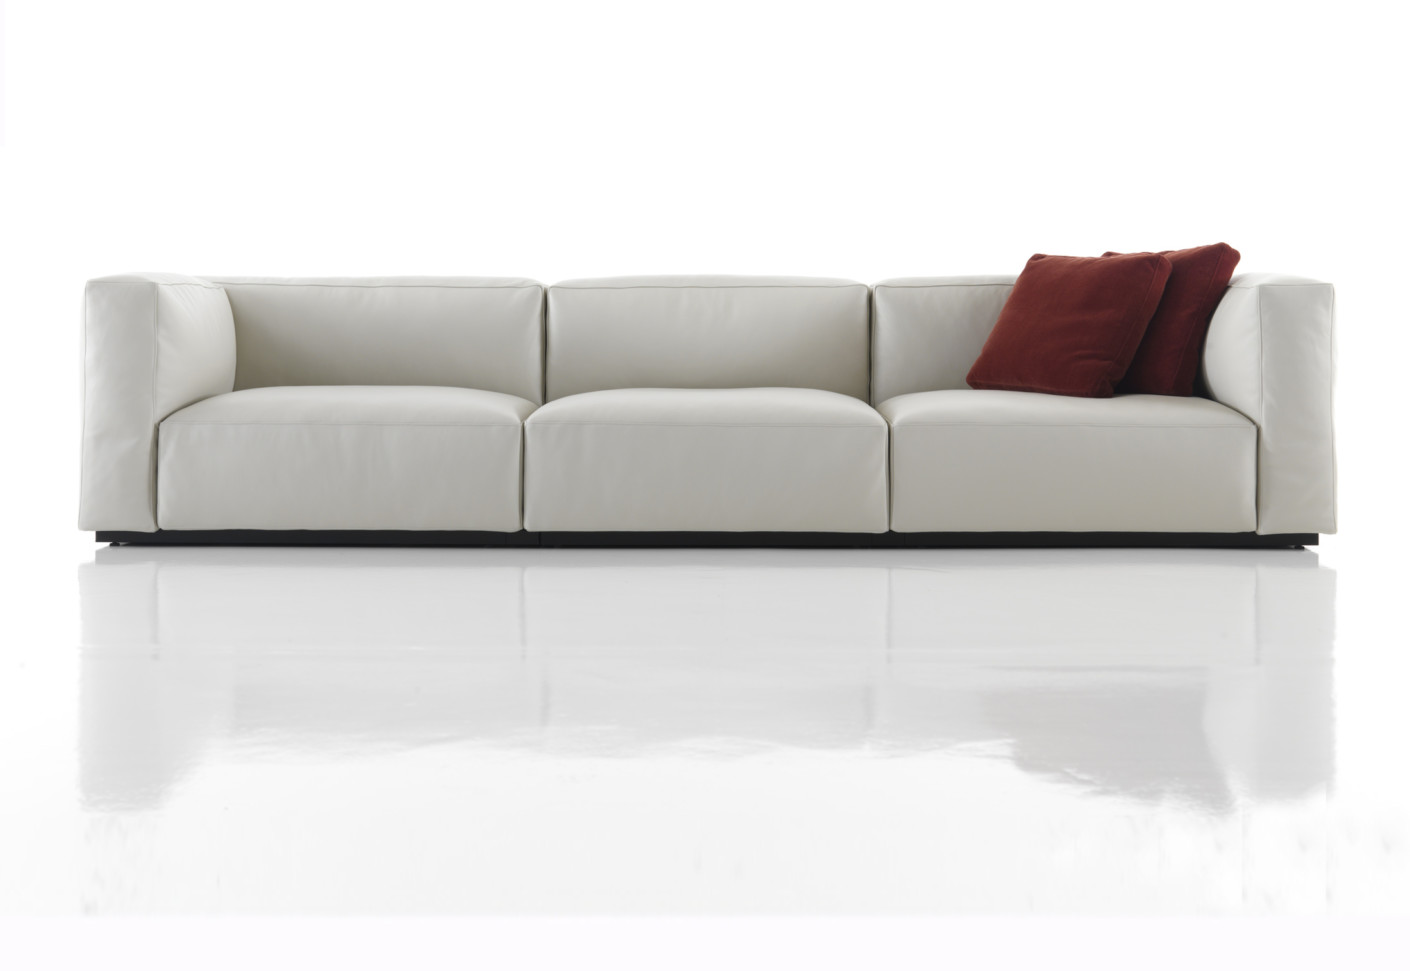 Mex cube sofa by cassina stylepark for Sofas modulares de tela